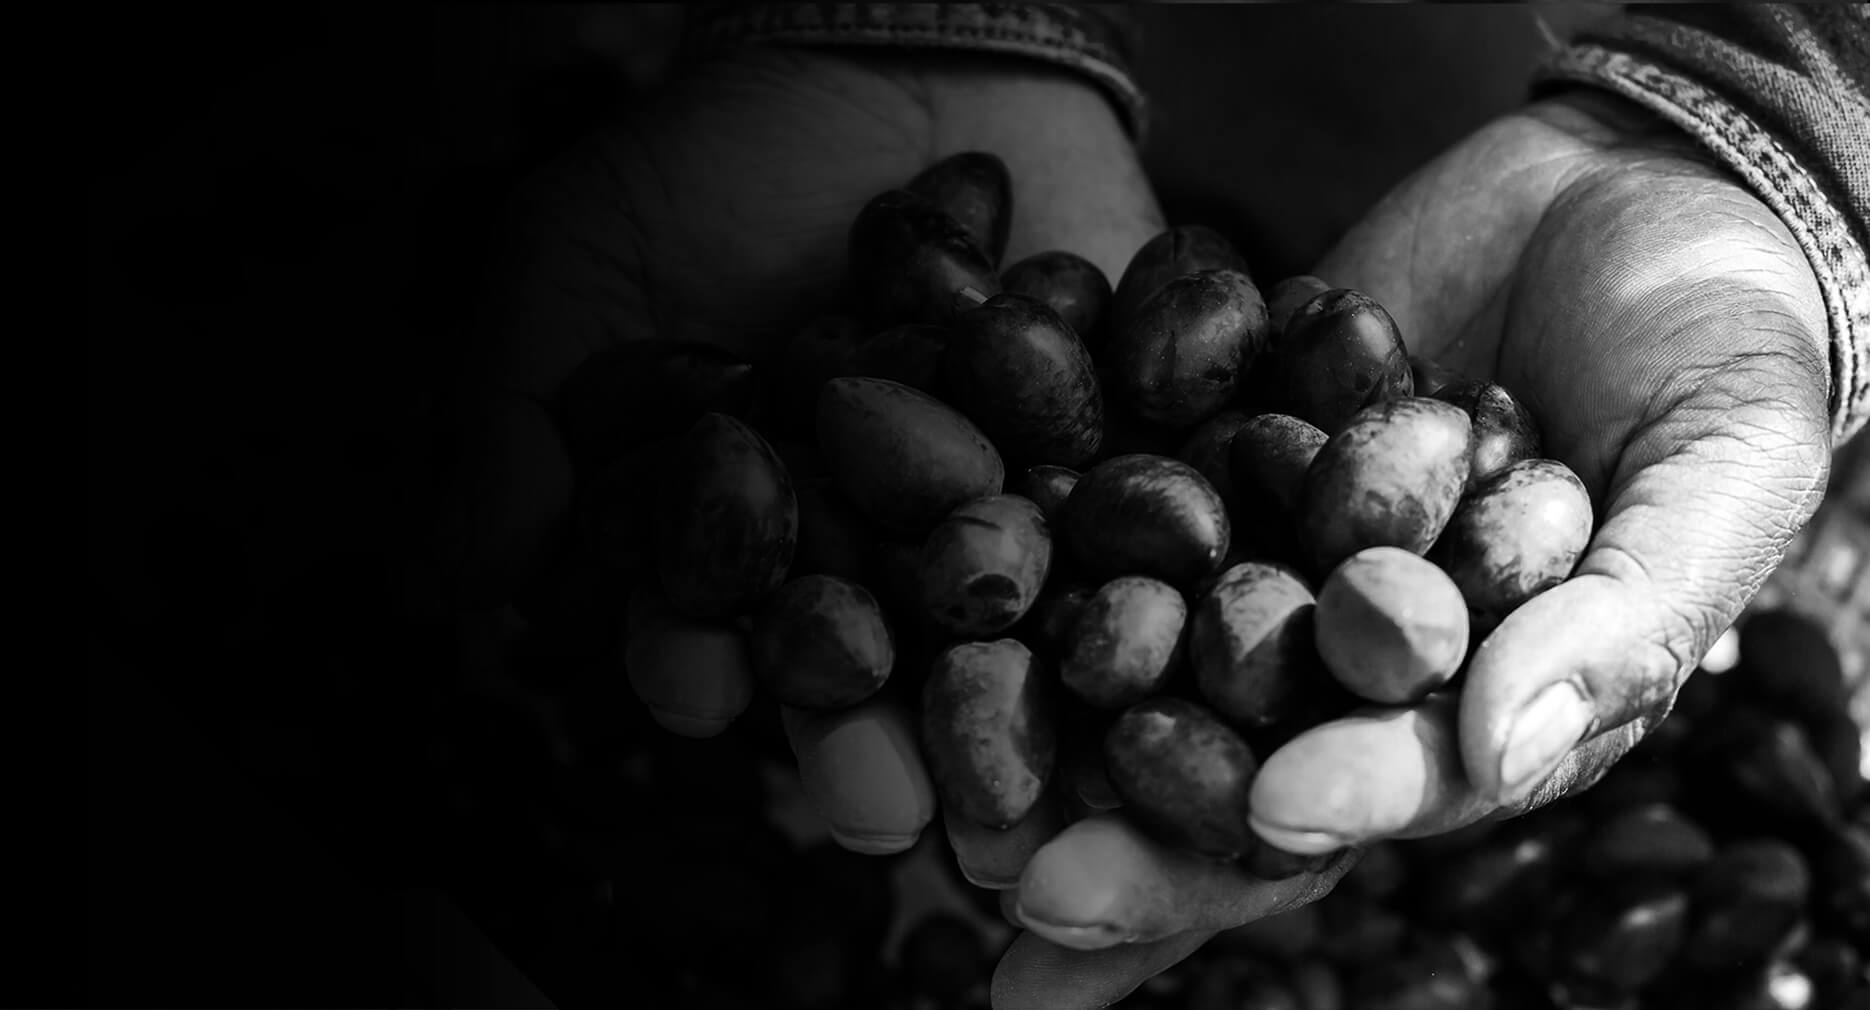 Penfield Olives olive producers slider pic, black and white image of a man holding olives in both hands.